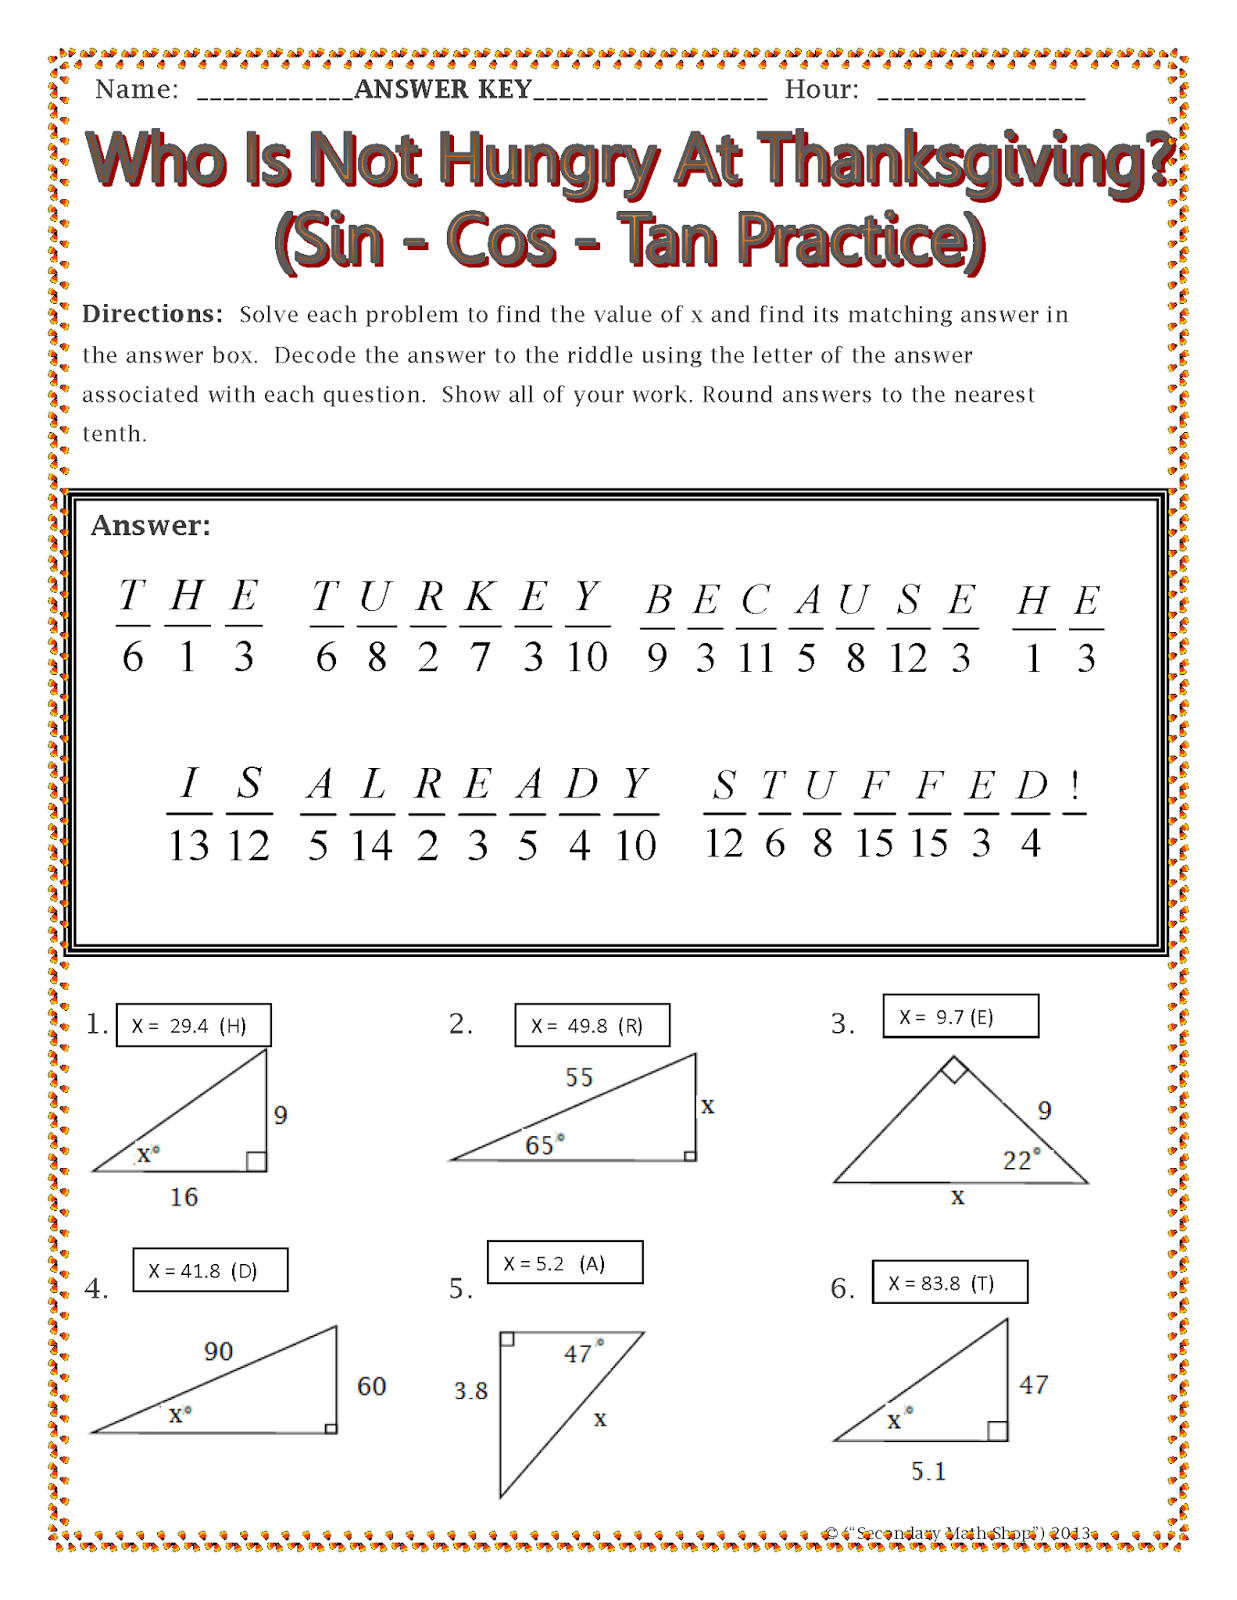 sine cosine and tangent practice worksheet answers worksheets releaseboard free printable. Black Bedroom Furniture Sets. Home Design Ideas